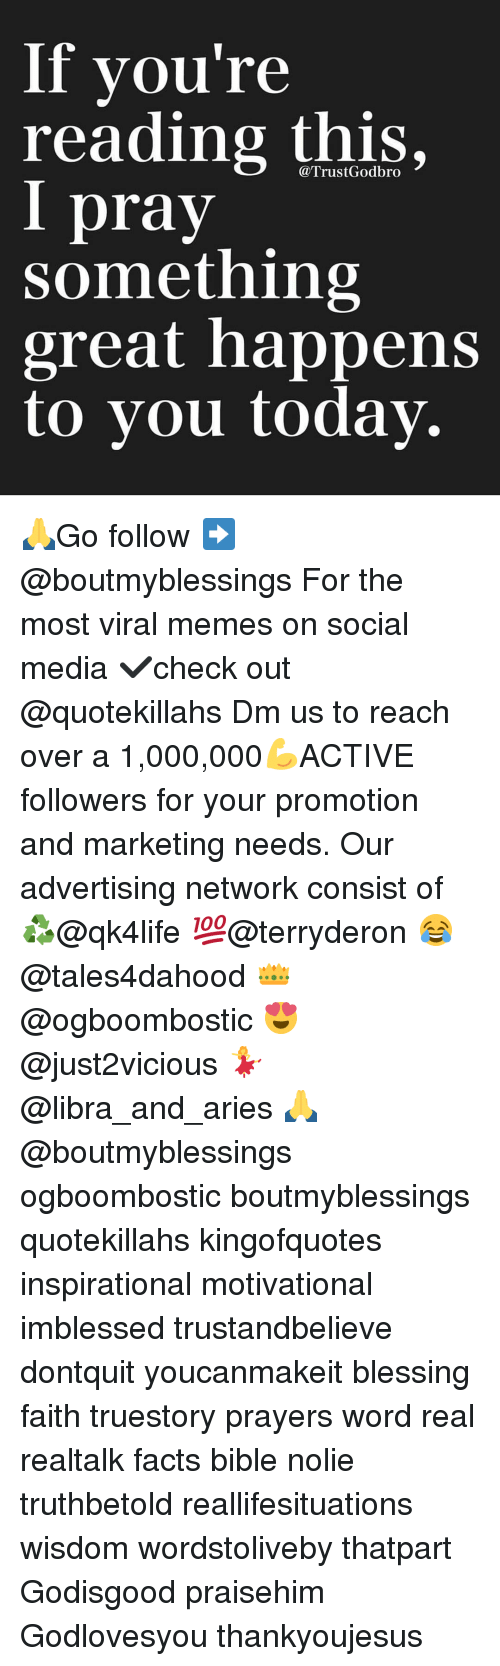 Advertisment: If you're  reading this,  pray  something  great happens  to you today 🙏Go follow ➡@boutmyblessings For the most viral memes on social media ✔check out @quotekillahs Dm us to reach over a 1,000,000💪ACTIVE followers for your promotion and marketing needs. Our advertising network consist of ♻@qk4life 💯@terryderon 😂@tales4dahood 👑@ogboombostic 😍@just2vicious 💃@libra_and_aries 🙏@boutmyblessings ogboombostic boutmyblessings quotekillahs kingofquotes inspirational motivational imblessed trustandbelieve dontquit youcanmakeit blessing faith truestory prayers word real realtalk facts bible nolie truthbetold reallifesituations wisdom wordstoliveby thatpart Godisgood praisehim Godlovesyou thankyoujesus